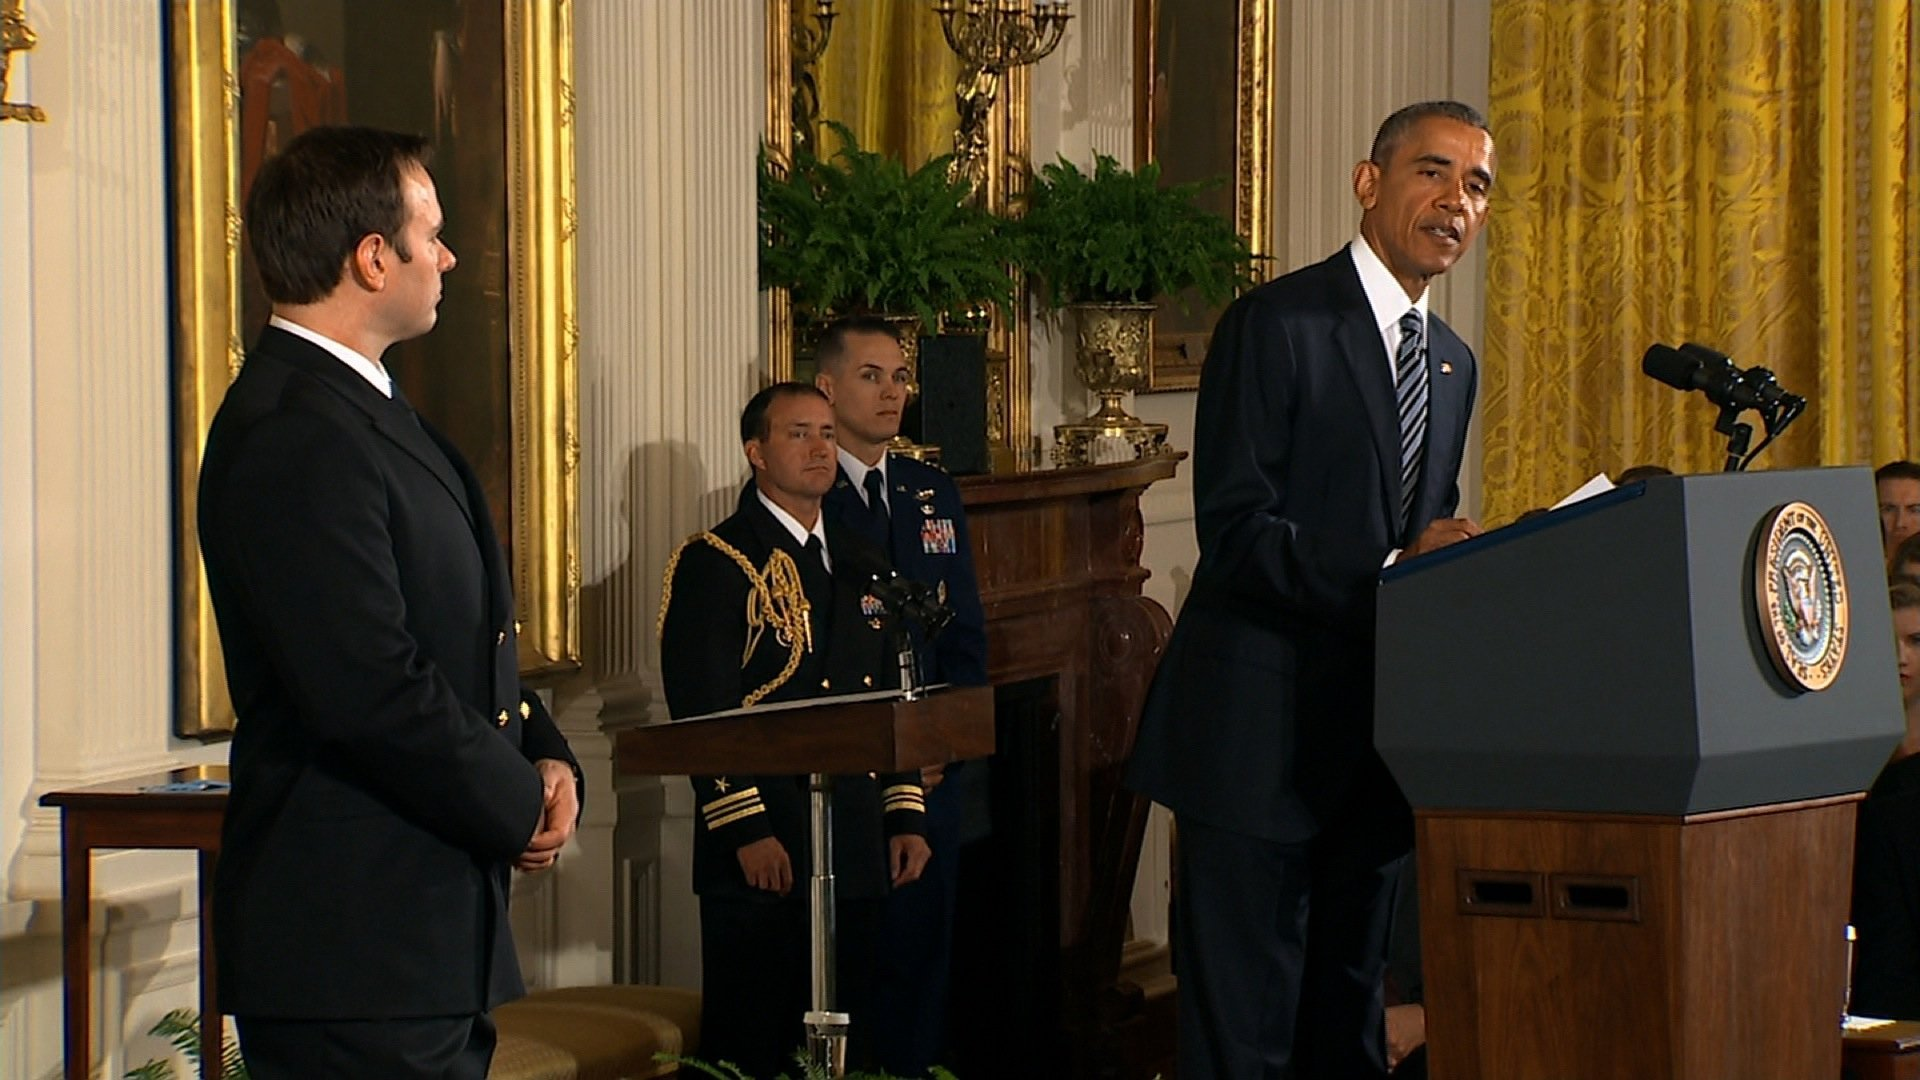 President Obama presents the Medal of Honor to Senior Chief Special Warfare Operator Edward Byers, U.S. Navy East Room